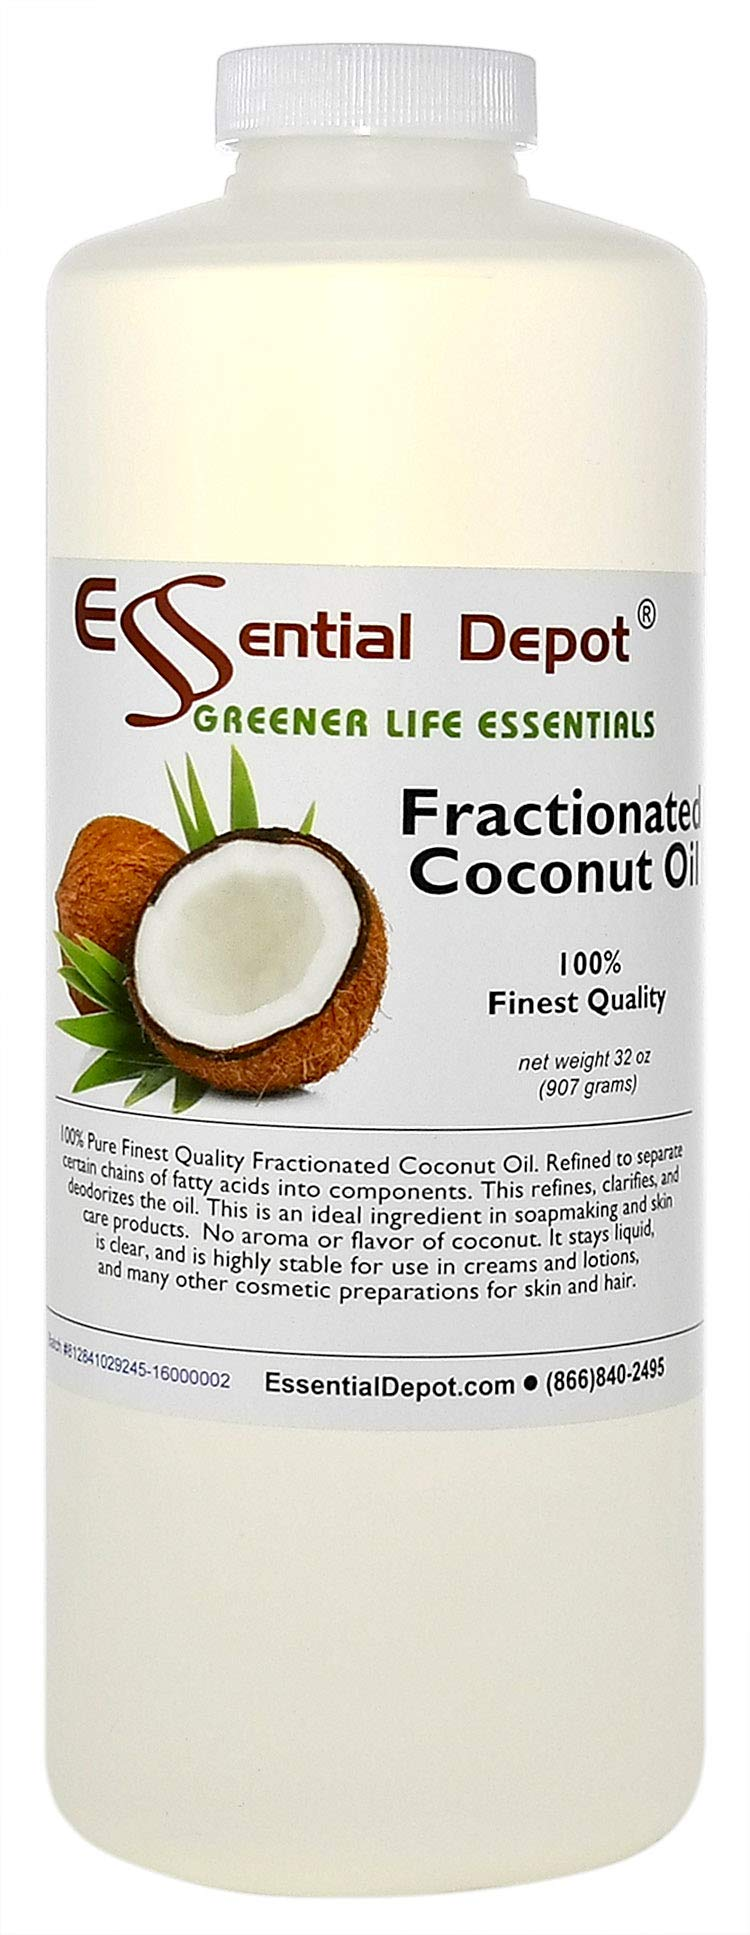 Coconut Oil - Fractionated - MCT Oil - 1 Quart - 32 oz